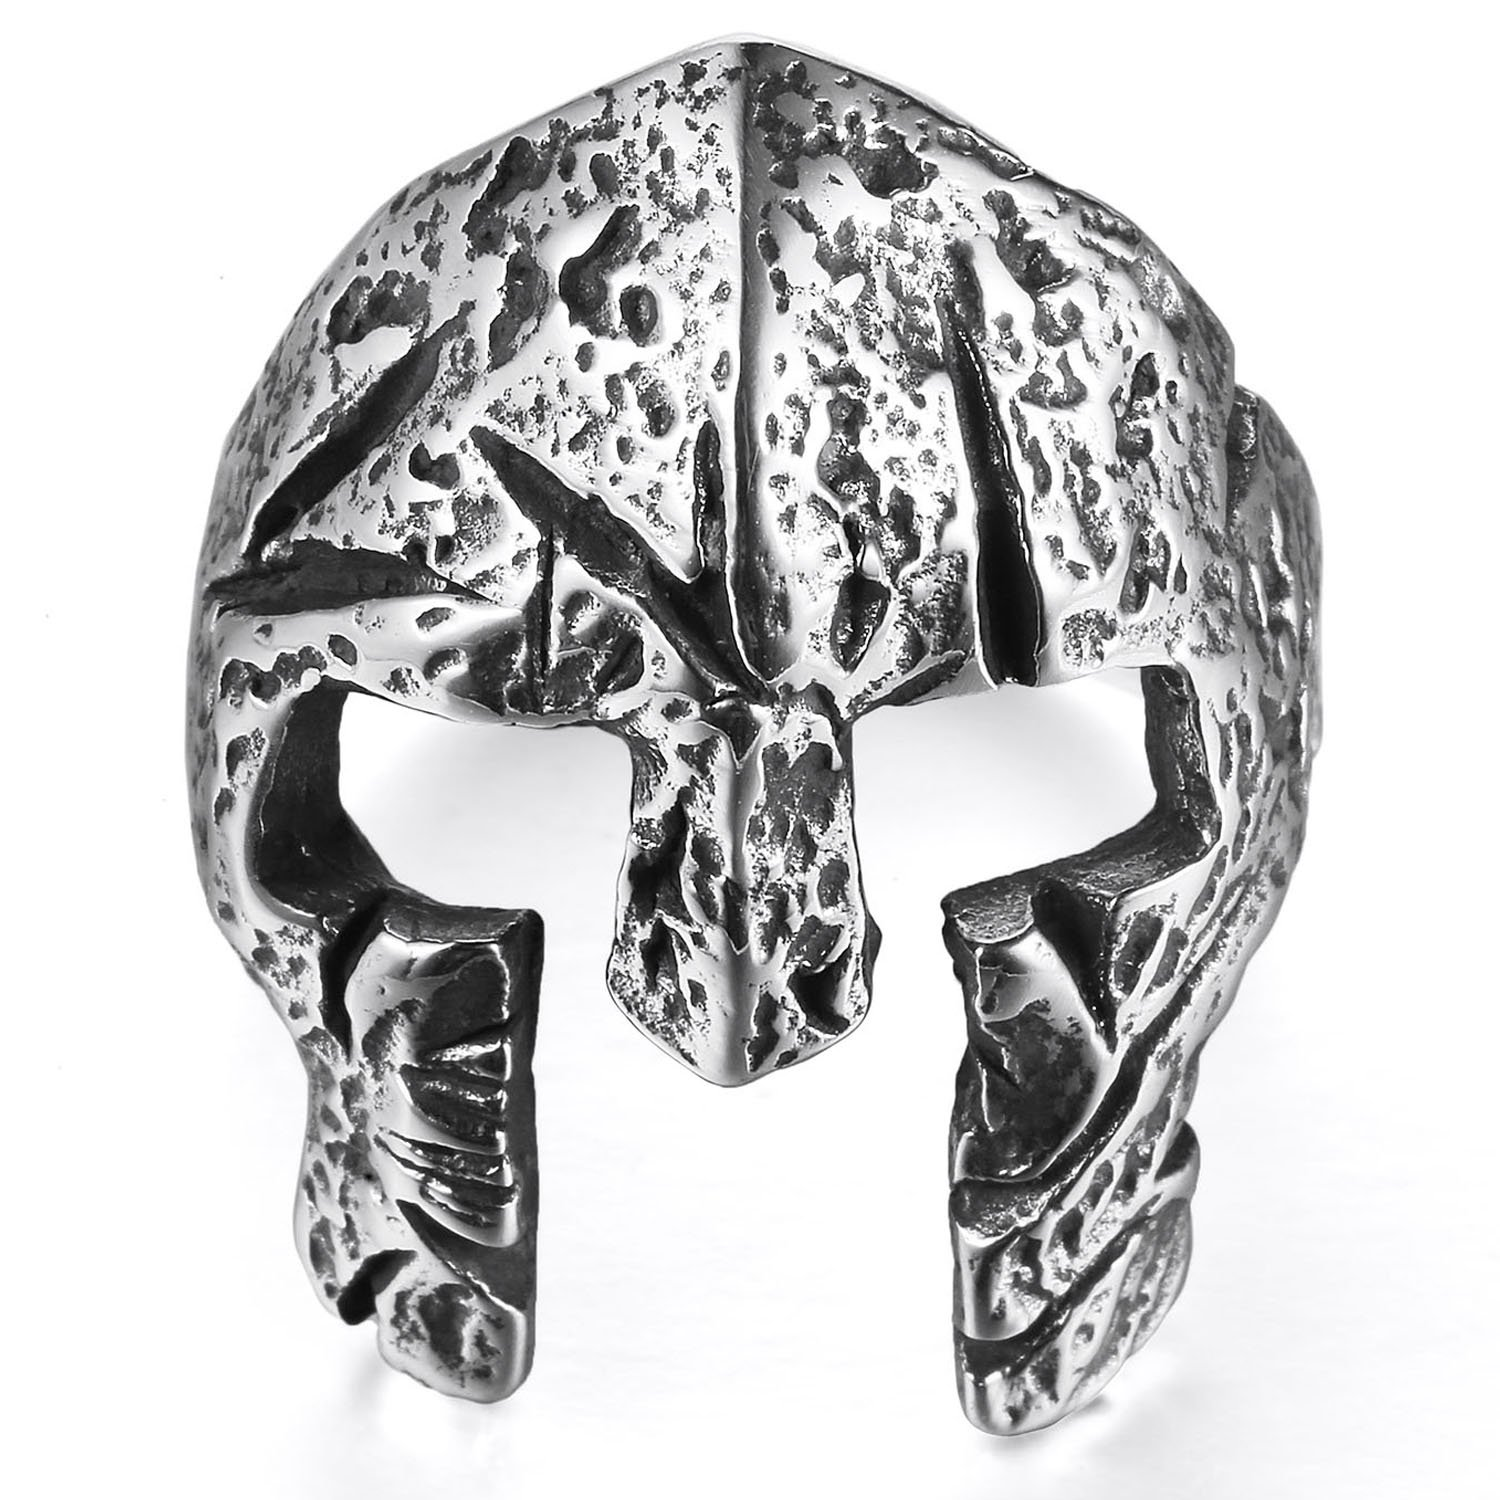 MENDINO Mens Stainless Steel Ring Greek Spartan Warriors Viking Knight Band Punk Silver Tone with a Velvet Bag